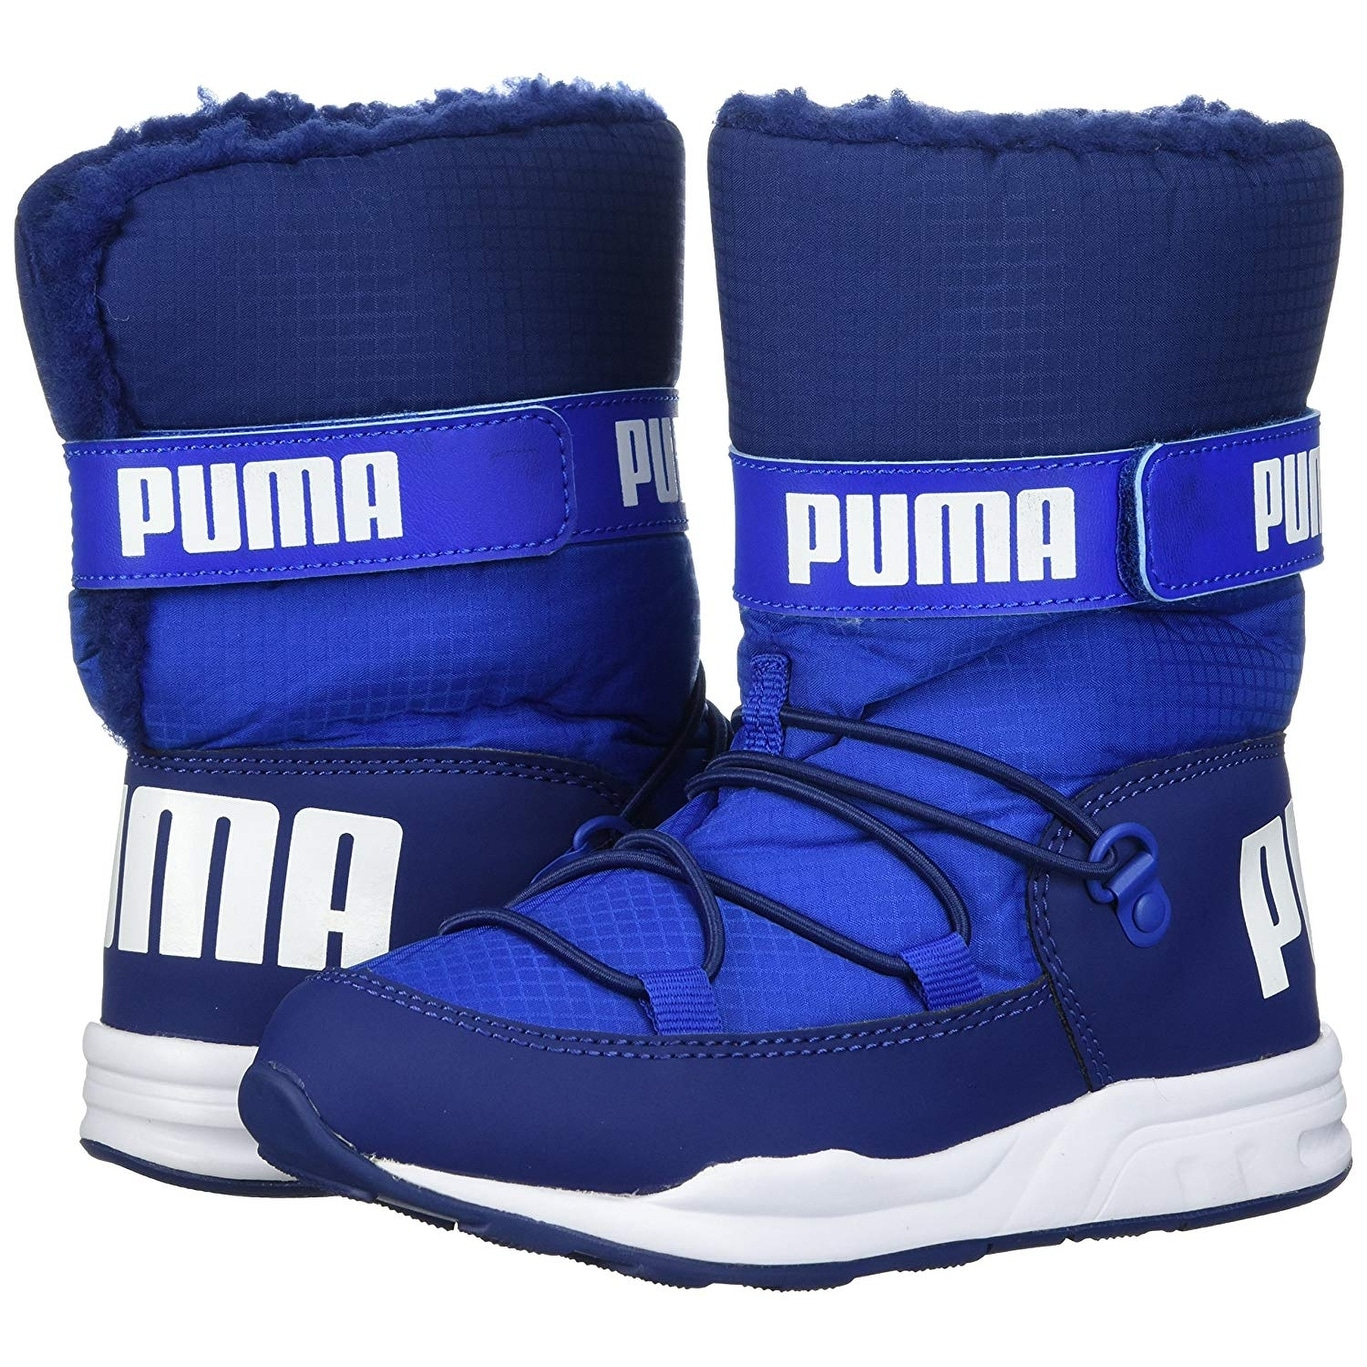 2a43ddc37d1285 Shop PUMA Boys trinomic Ankle Pull On Snow Boots - Free Shipping On Orders  Over  45 - Overstock - 22392147